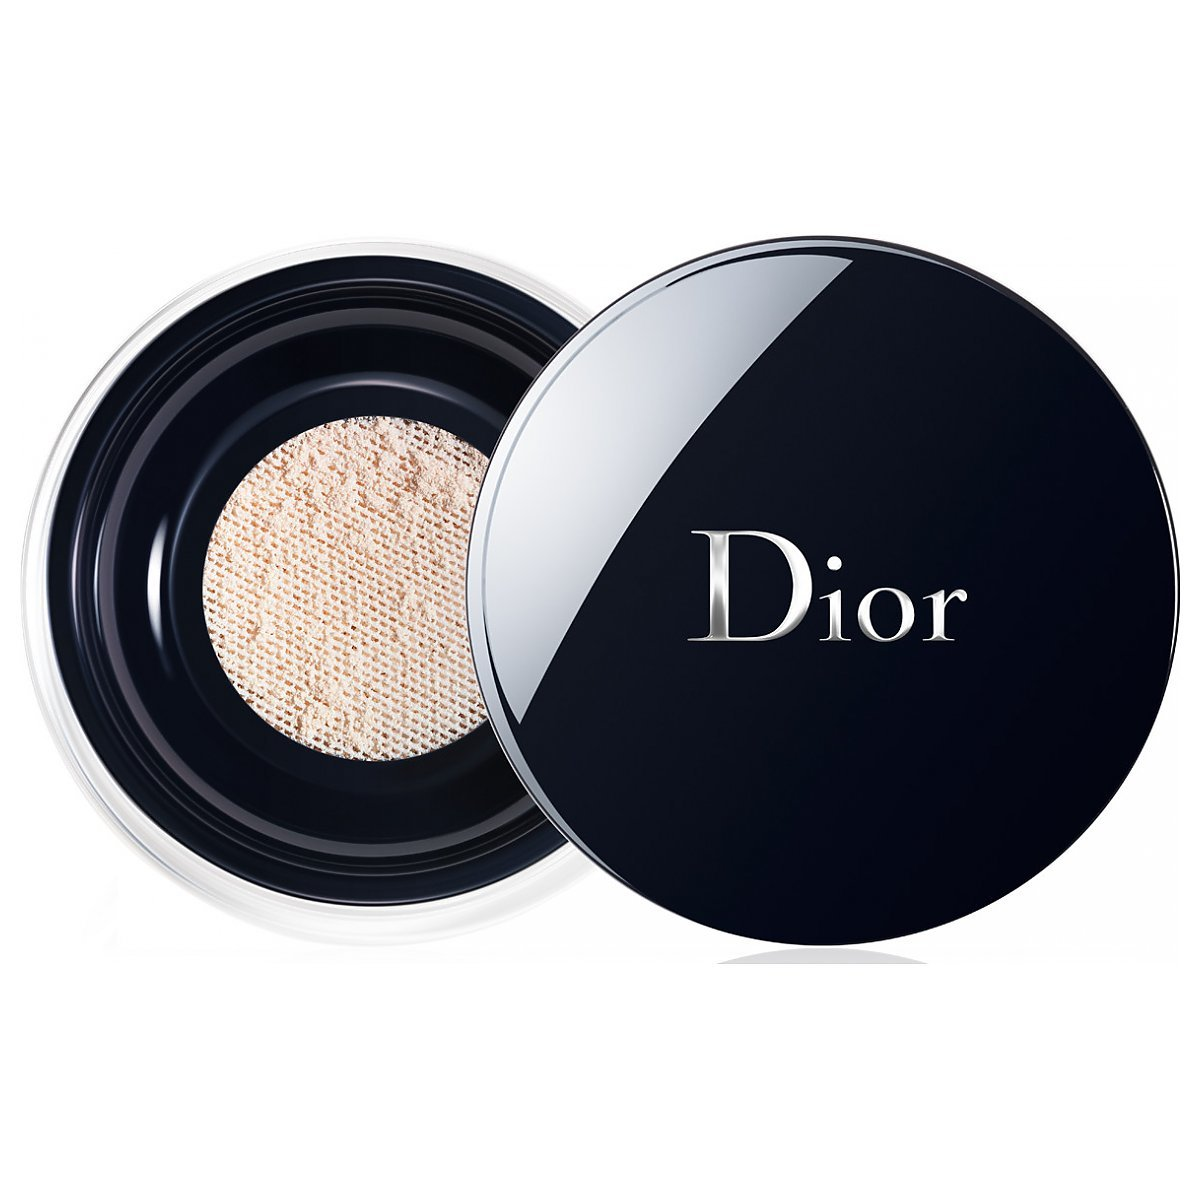 55a5a40449cd66 Christian Dior Diorskin Forever & Ever Control Loose Powder Puder ...